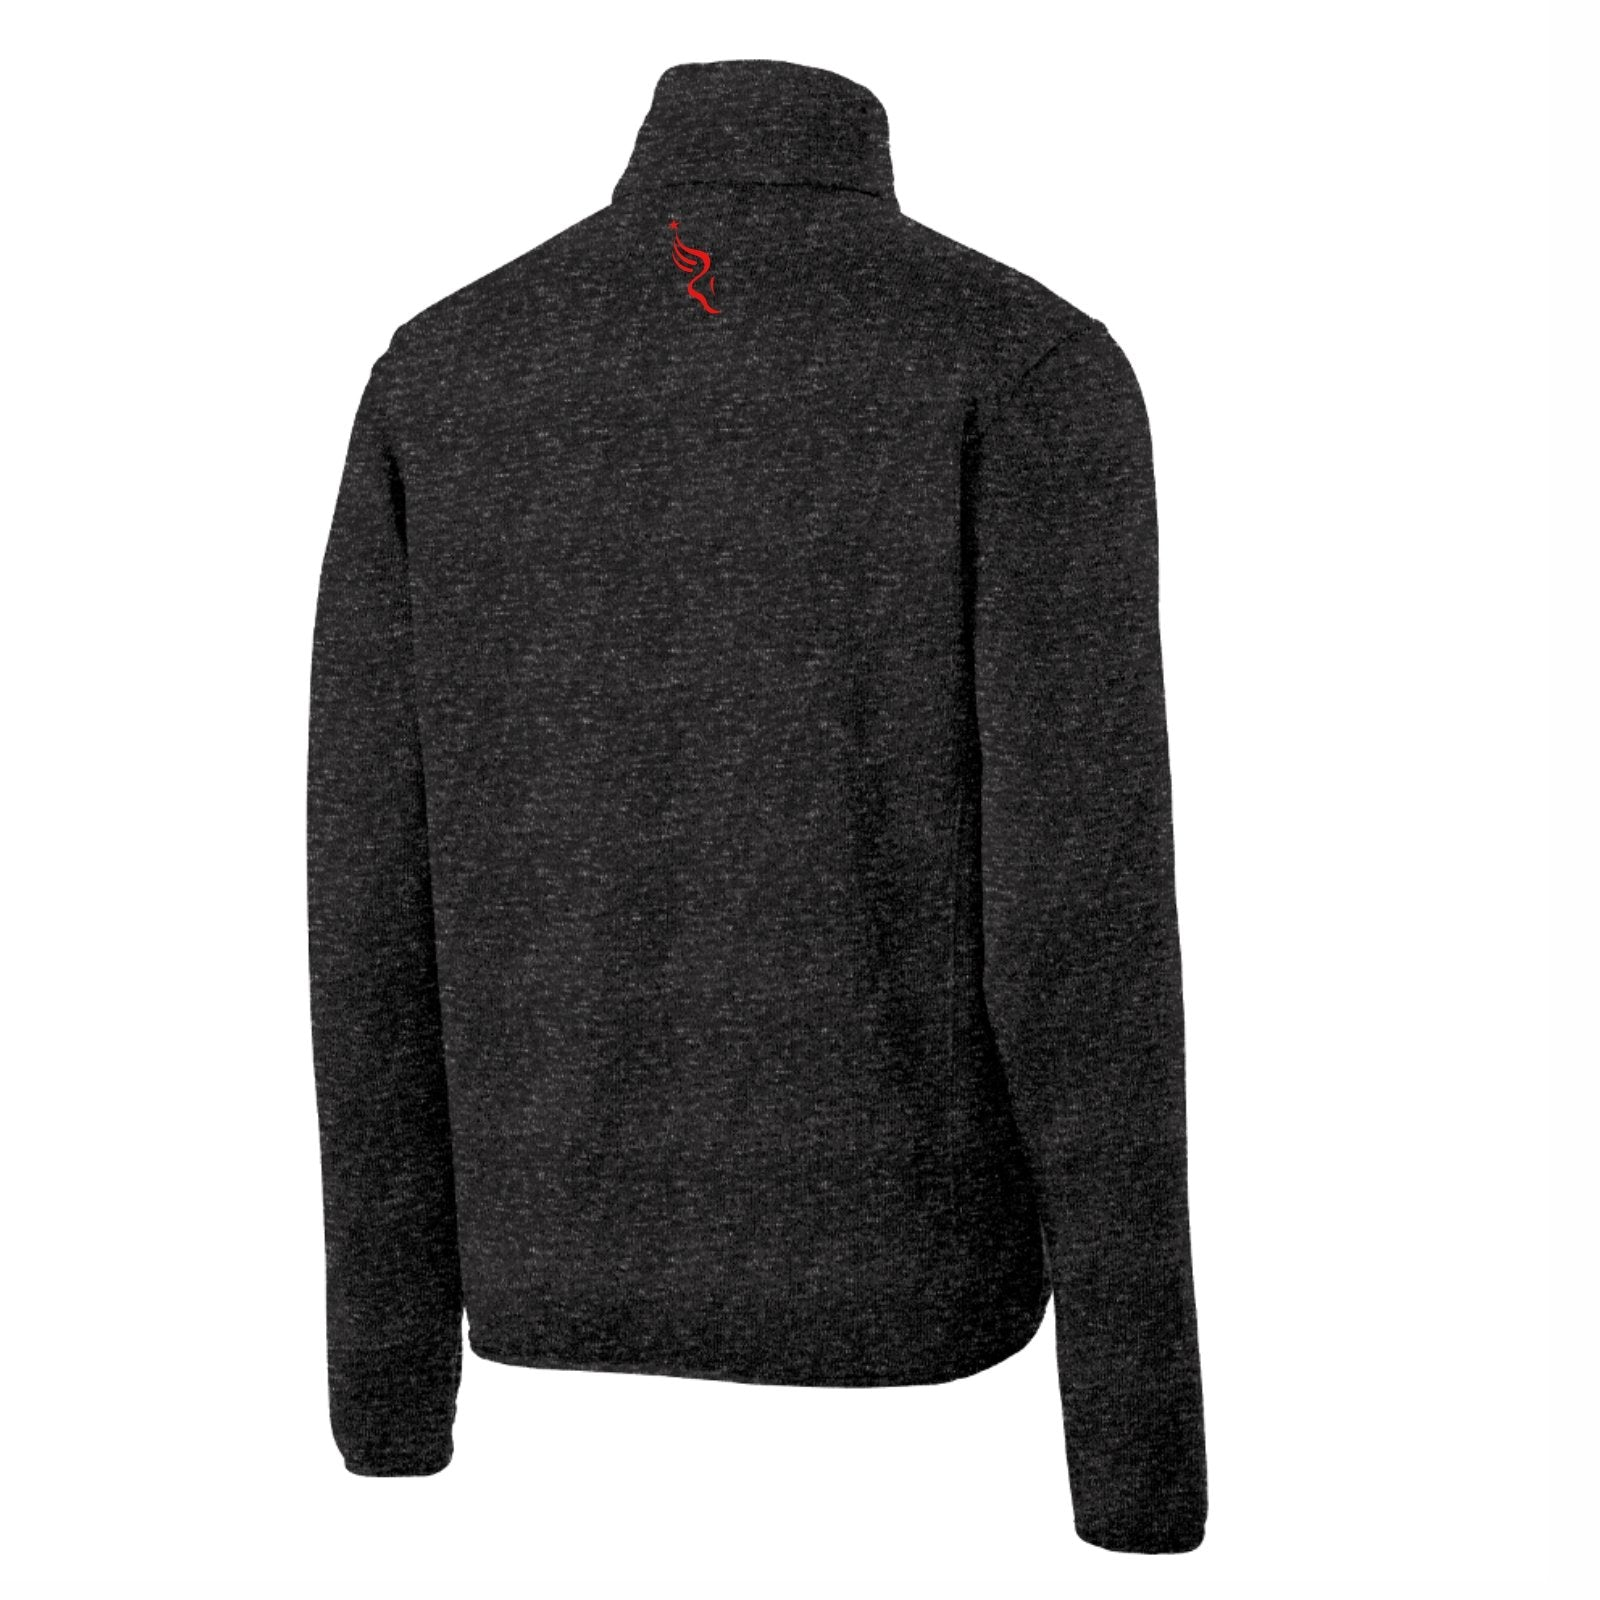 Men's Fleece Zip Sweater Jacket -Black Heather 'Left Chest Embr. Design' - AACR Philadelphia Marathon